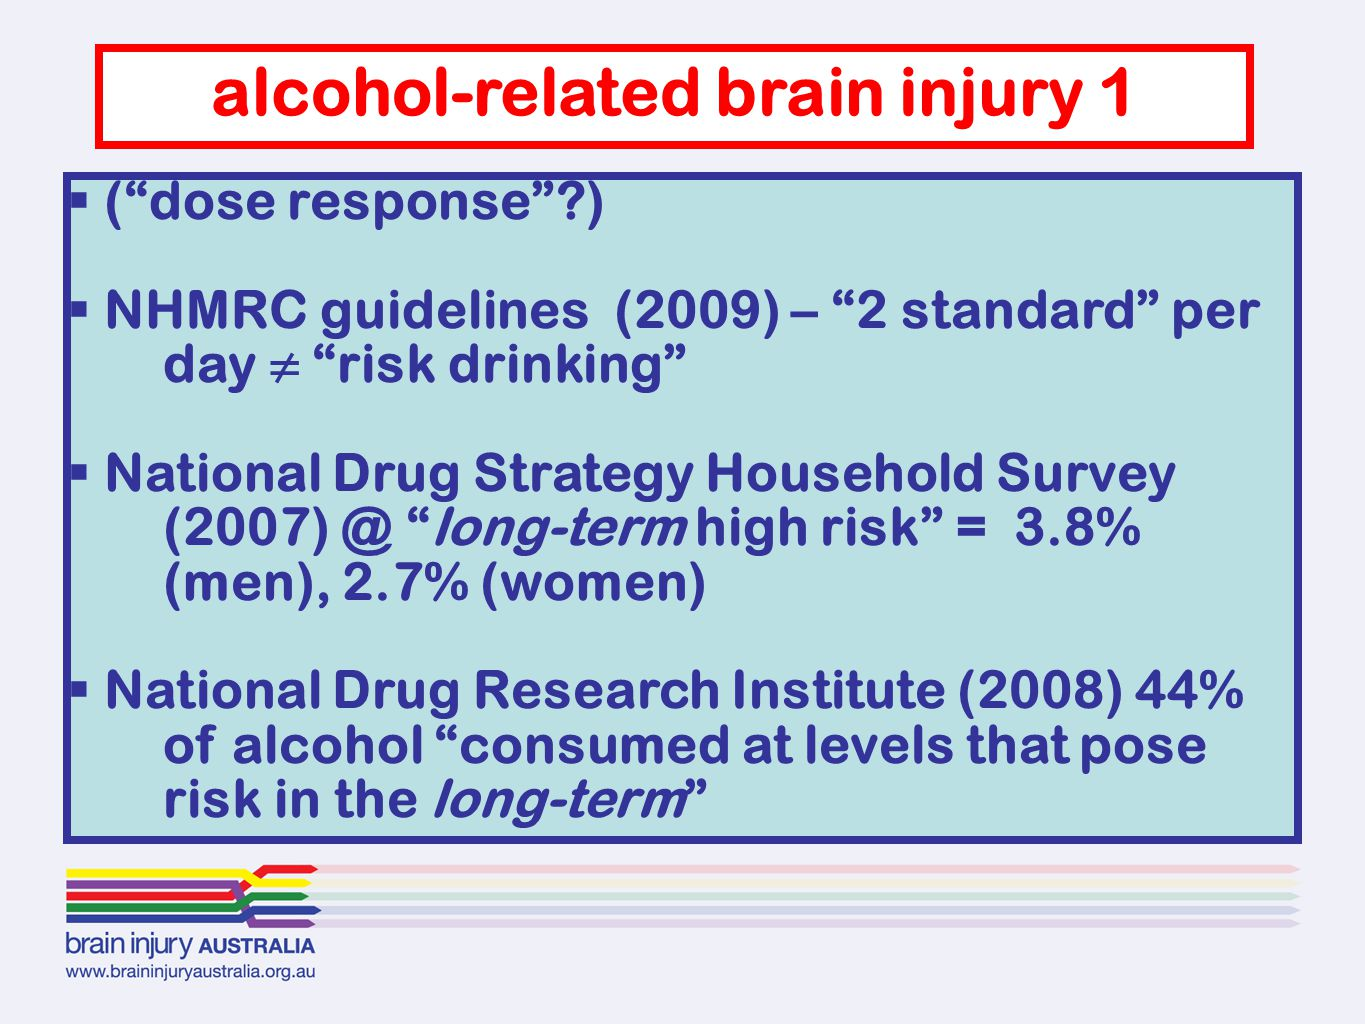  ( dose response )  NHMRC guidelines (2009) – 2 standard per day ≠ risk drinking  National Drug Strategy Household Survey (2007) @ long-term high risk = 3.8% (men), 2.7% (women)  National Drug Research Institute (2008) 44% of alcohol consumed at levels that pose risk in the long-term alcohol-related brain injury 1